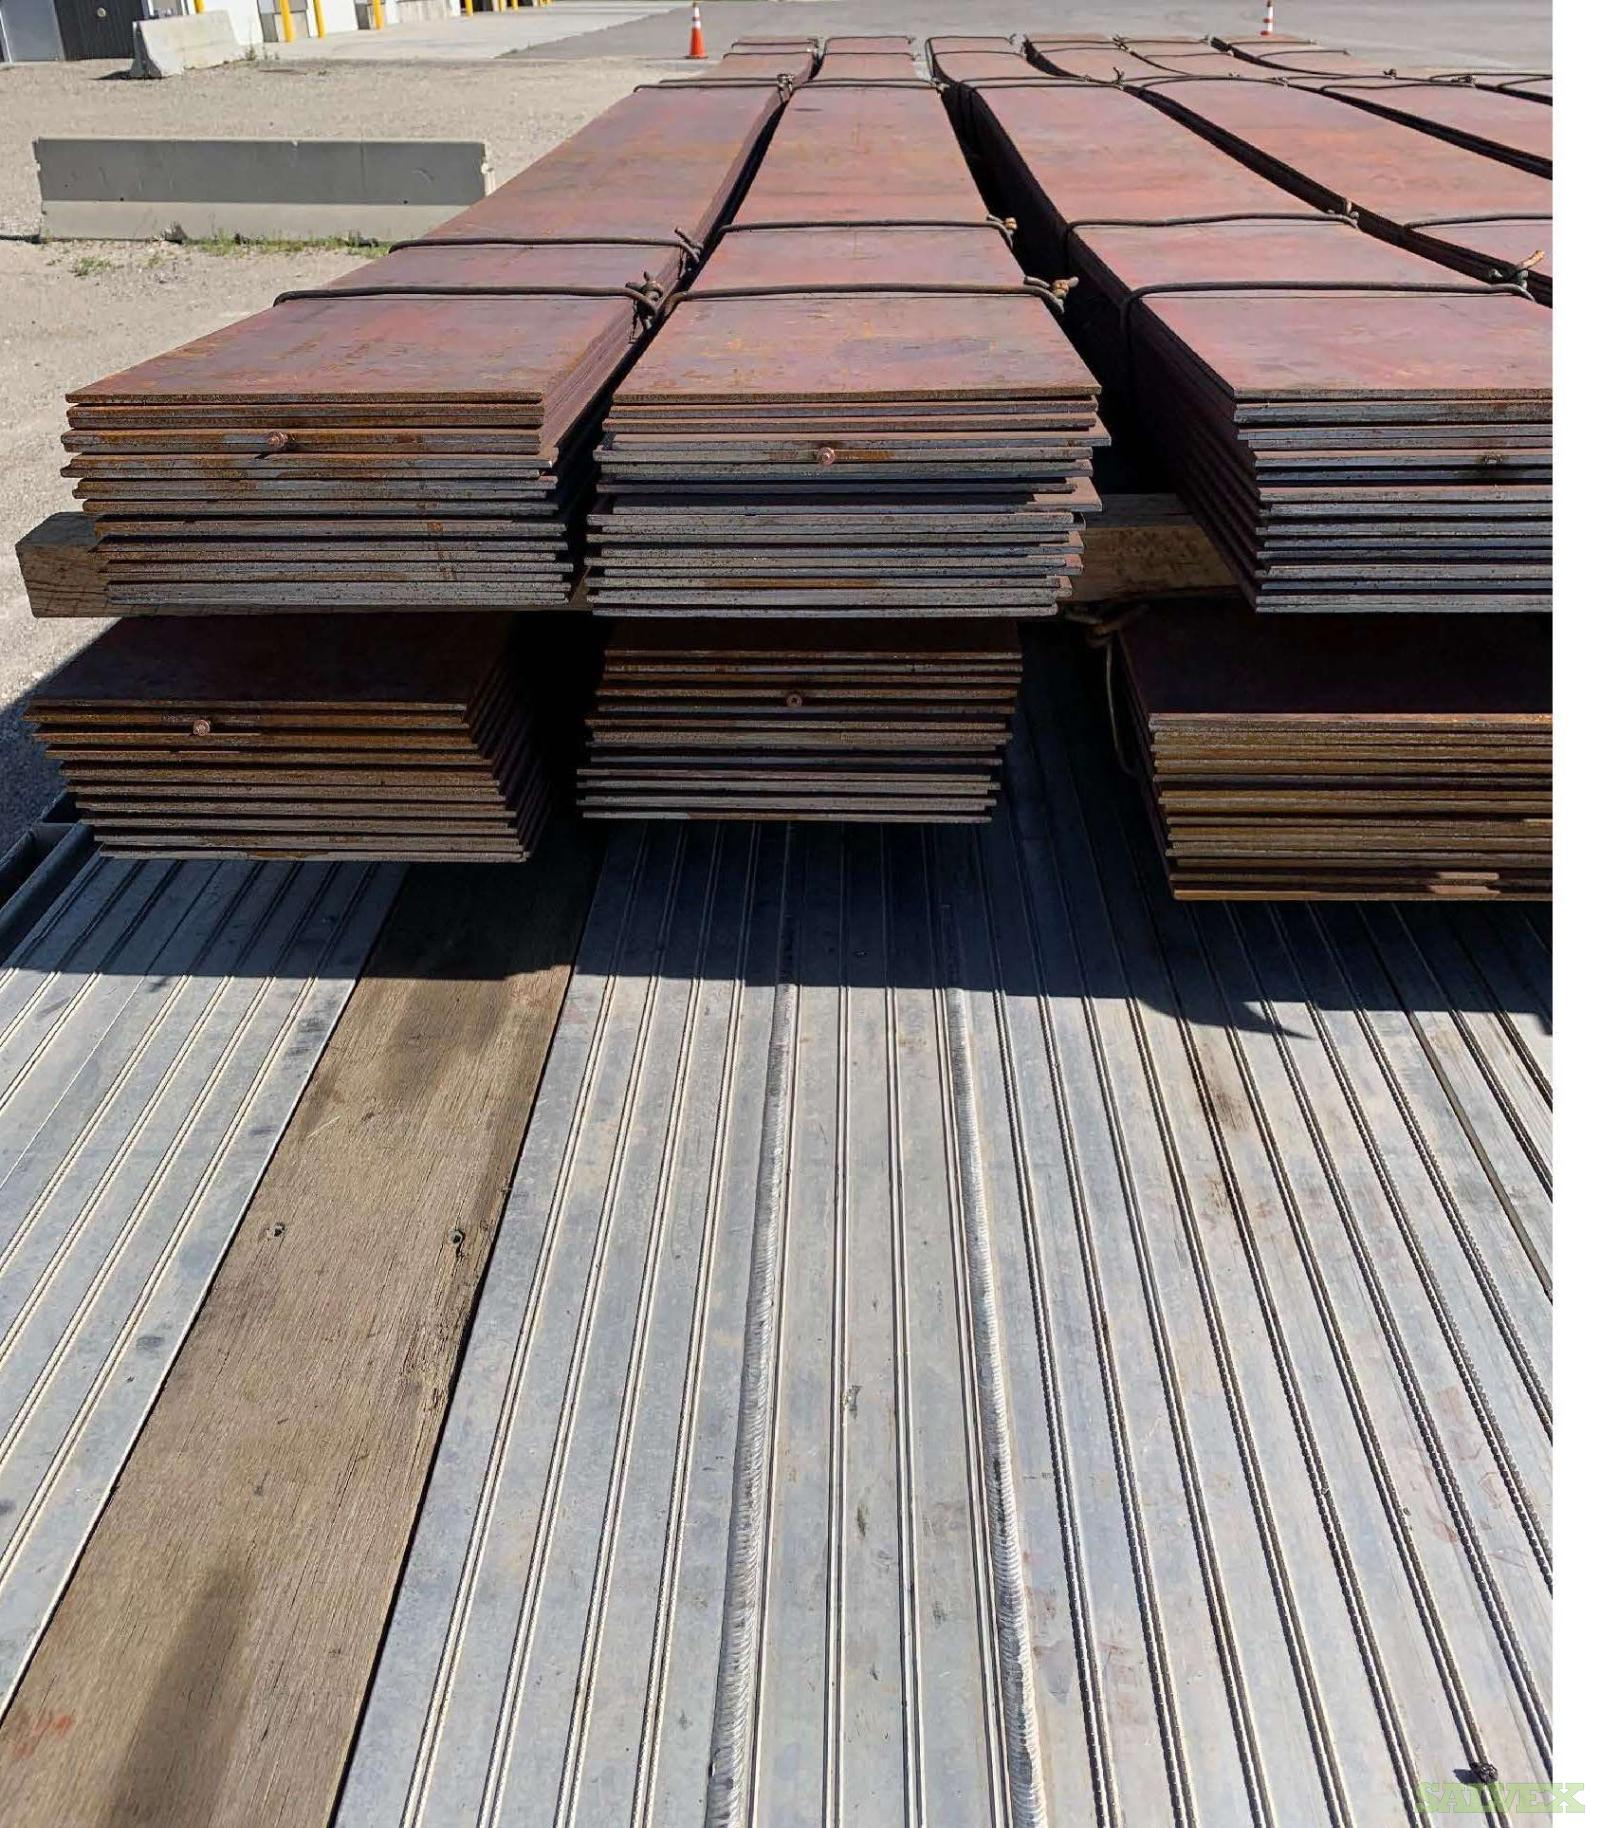 Hot Rolled Steel Plate (48,996 lbs)